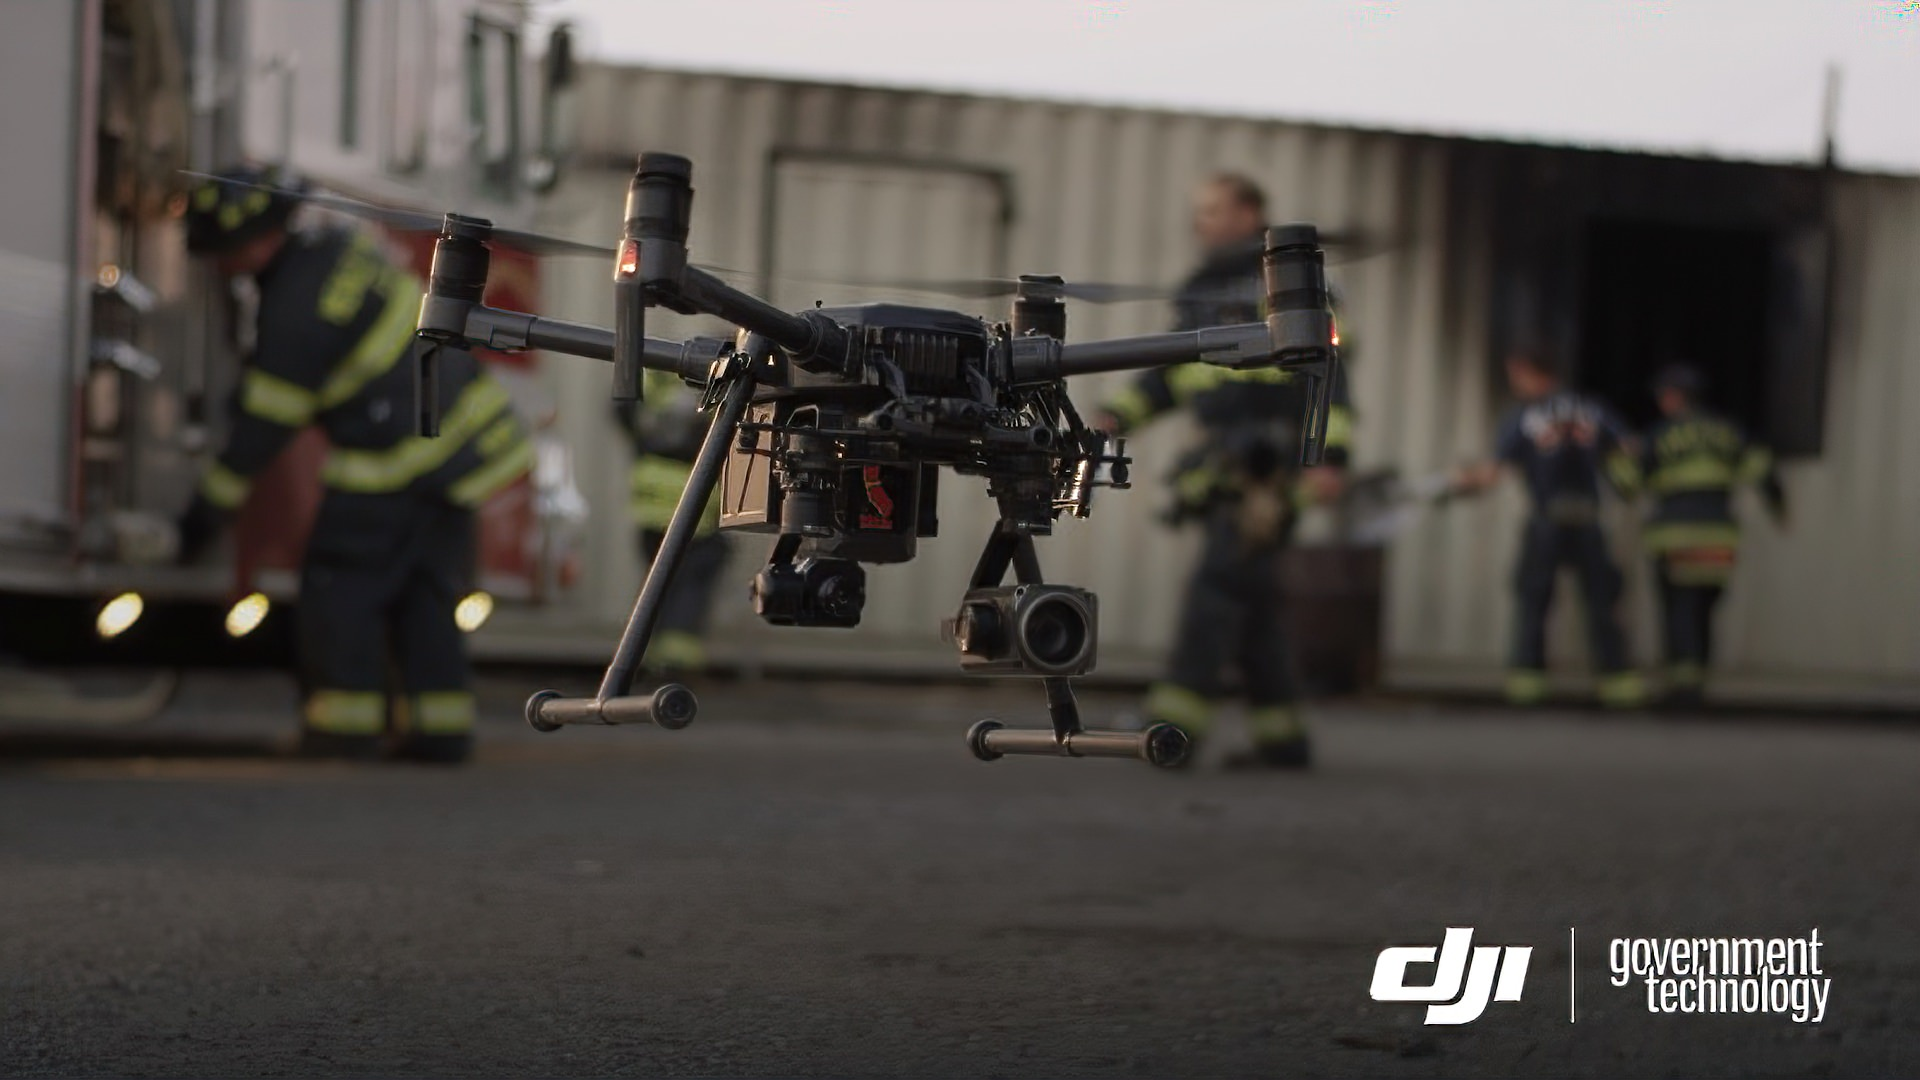 DJI and LAFD partnership to advance the use of drones